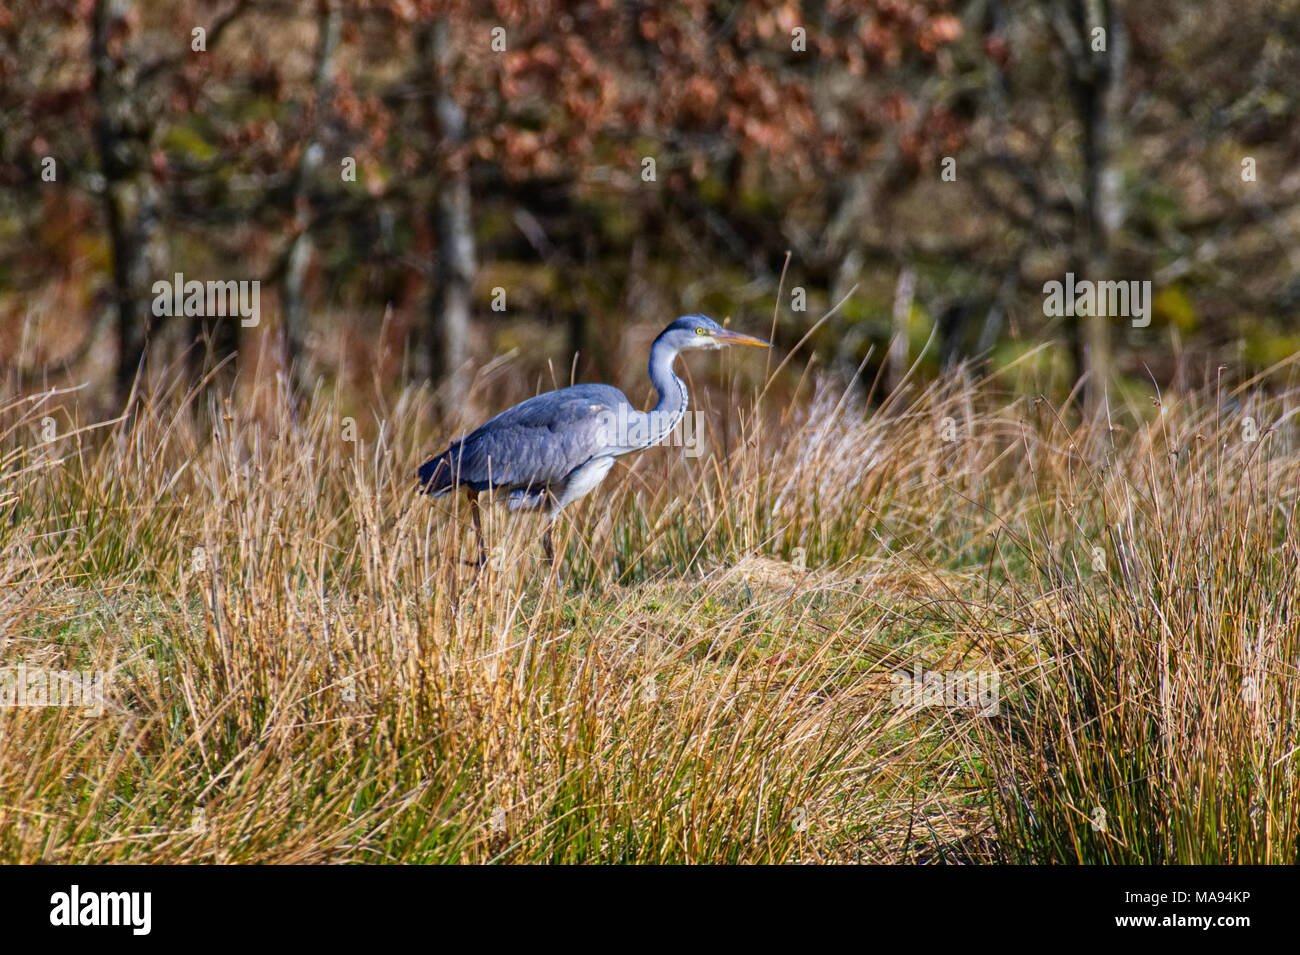 Heron In Foliage Stock Photos & Heron In Foliage Stock Images - Alamy